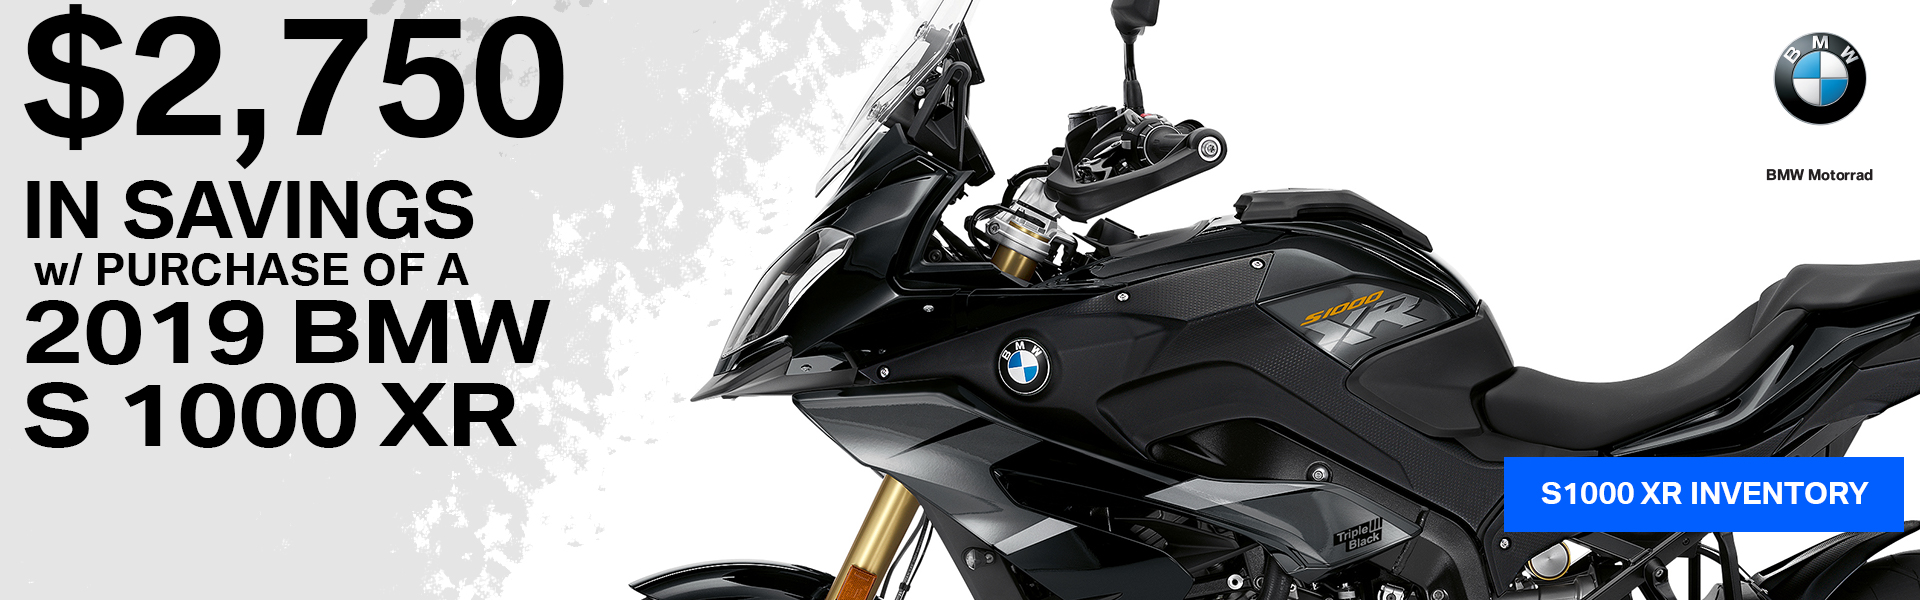 $2750 in Savings with Purchase of a new 2019 BMW S 1000 XR